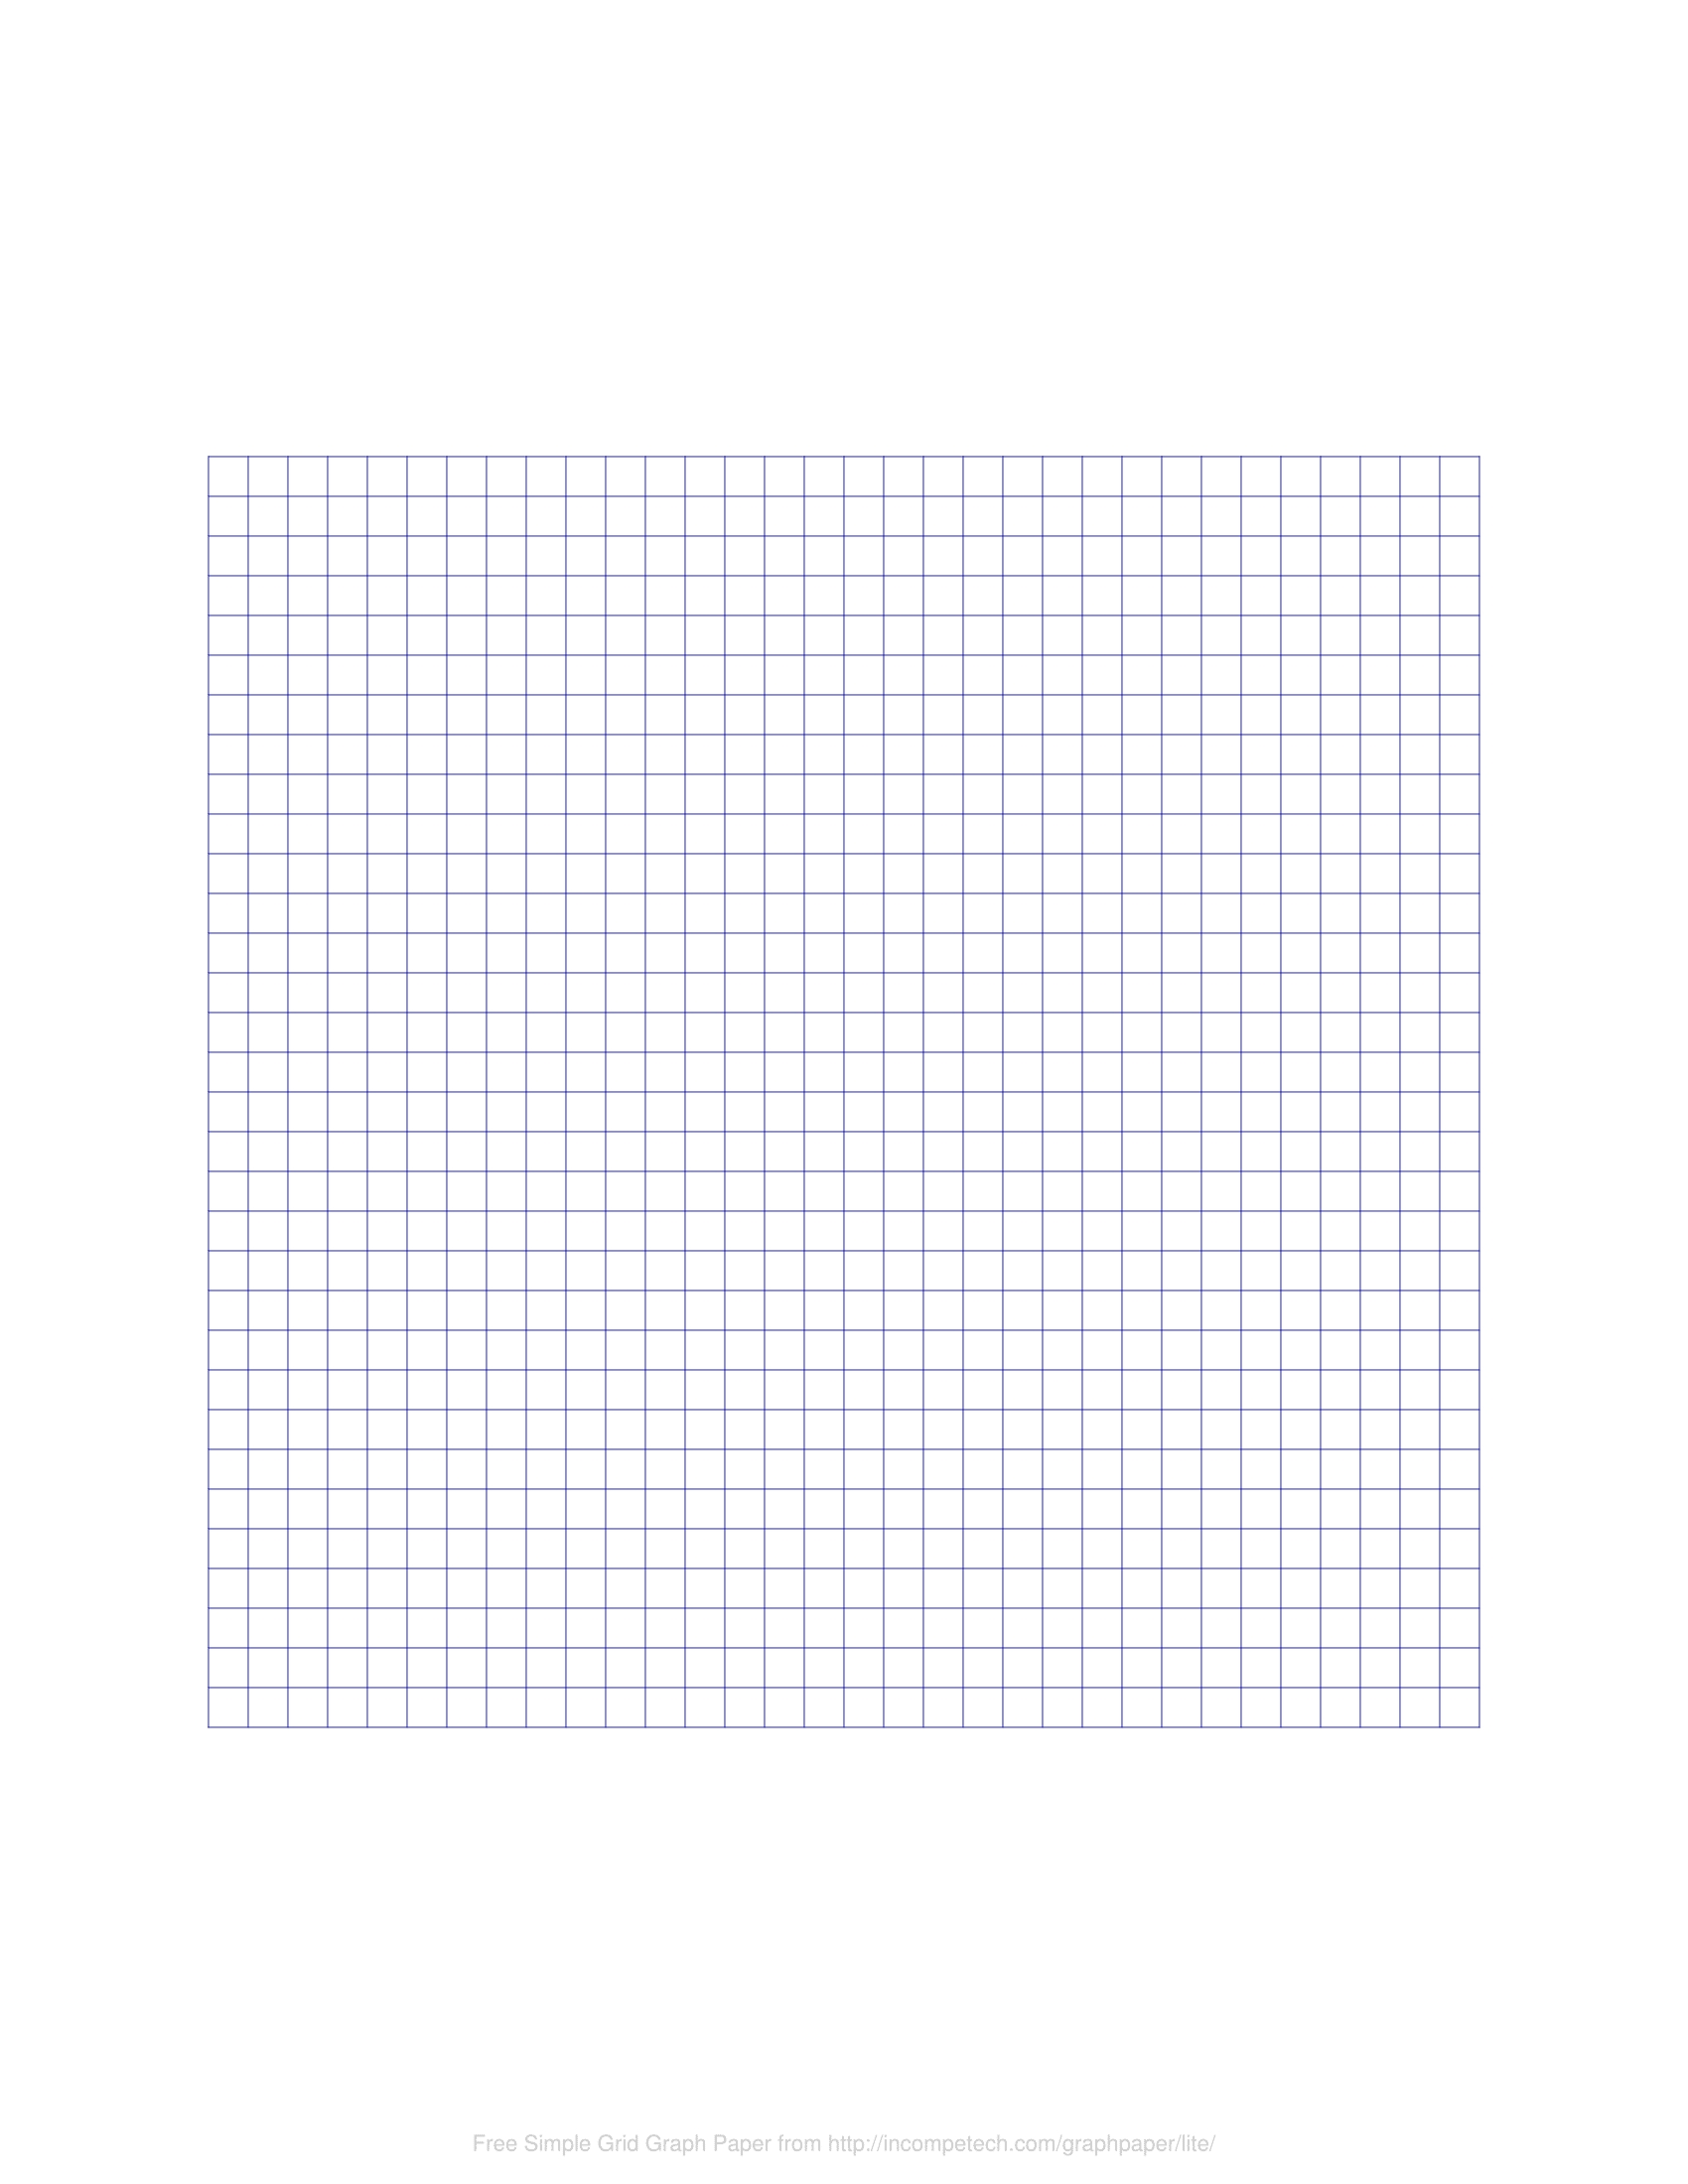 Free Online Graph Paper / Simple Grid intended for 12 X 30 Grid Png